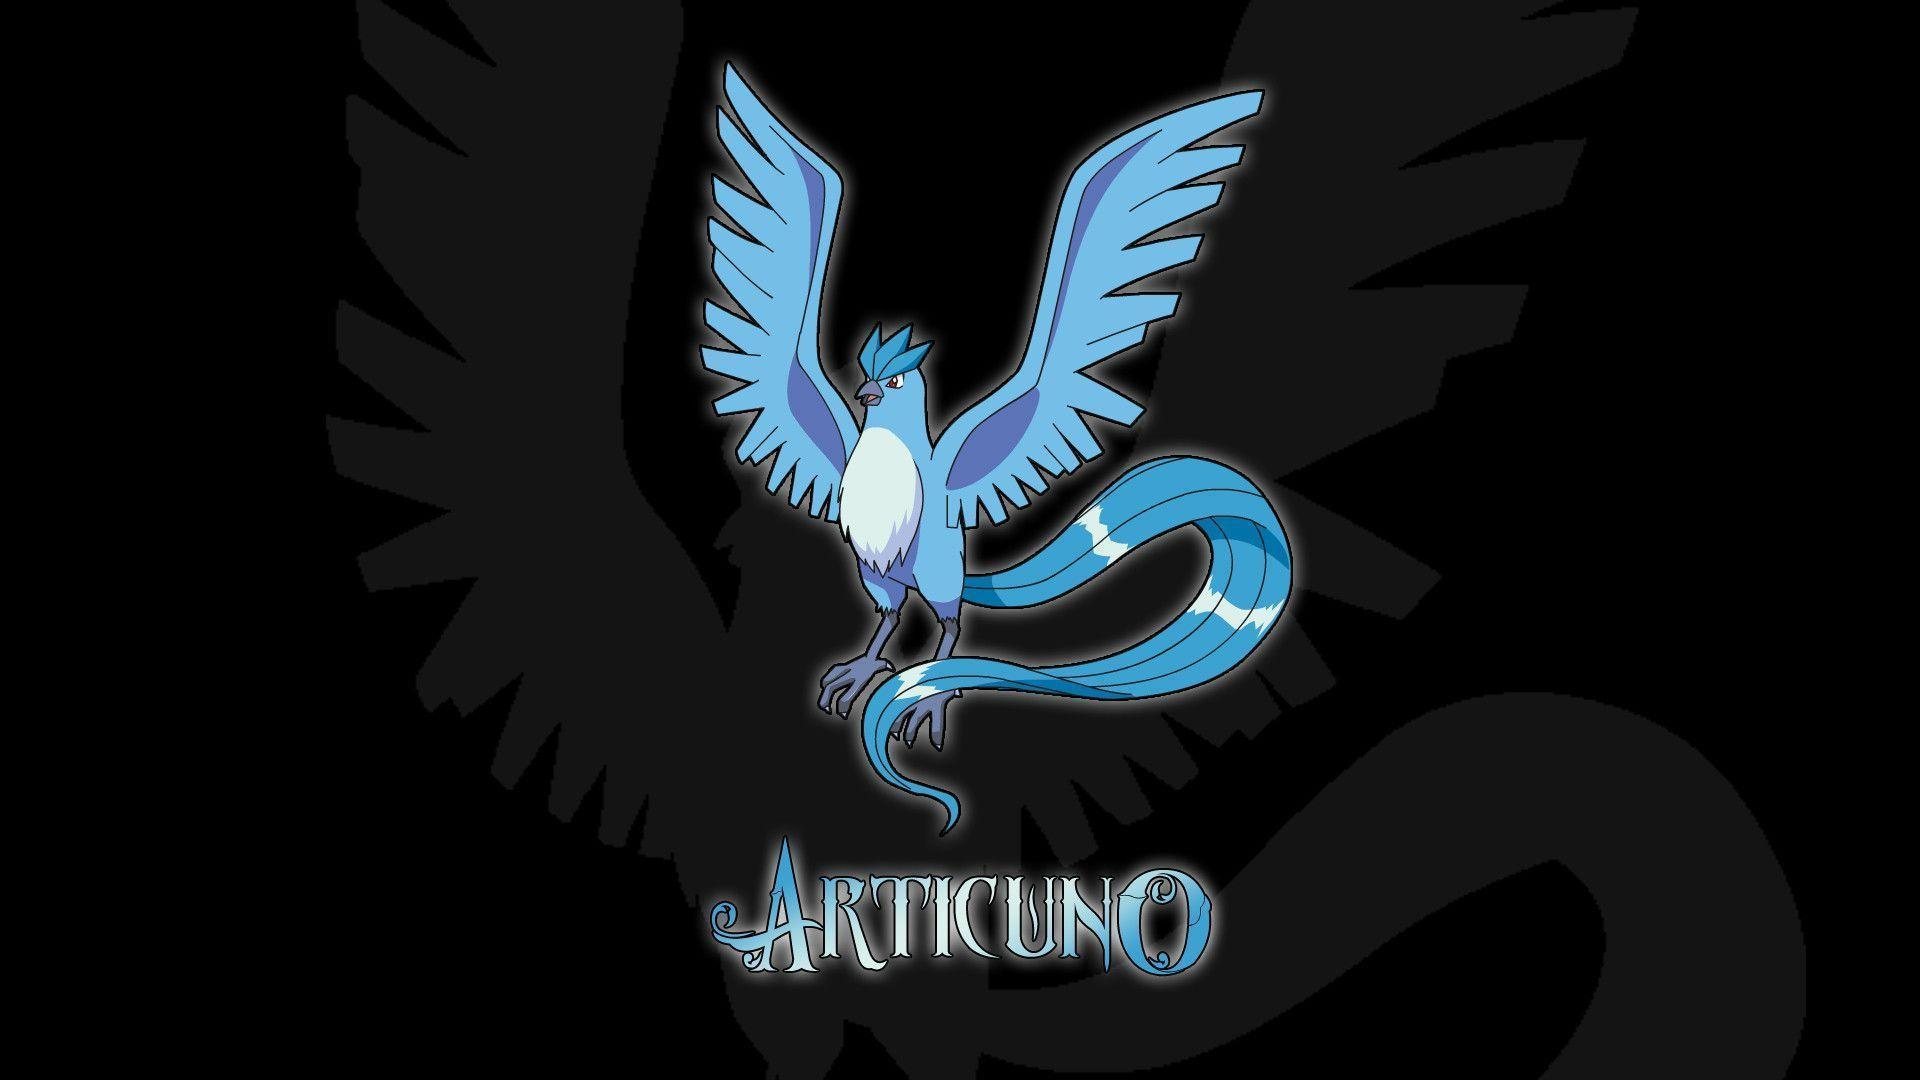 Articuno Wallpapers Wallpaper Cave